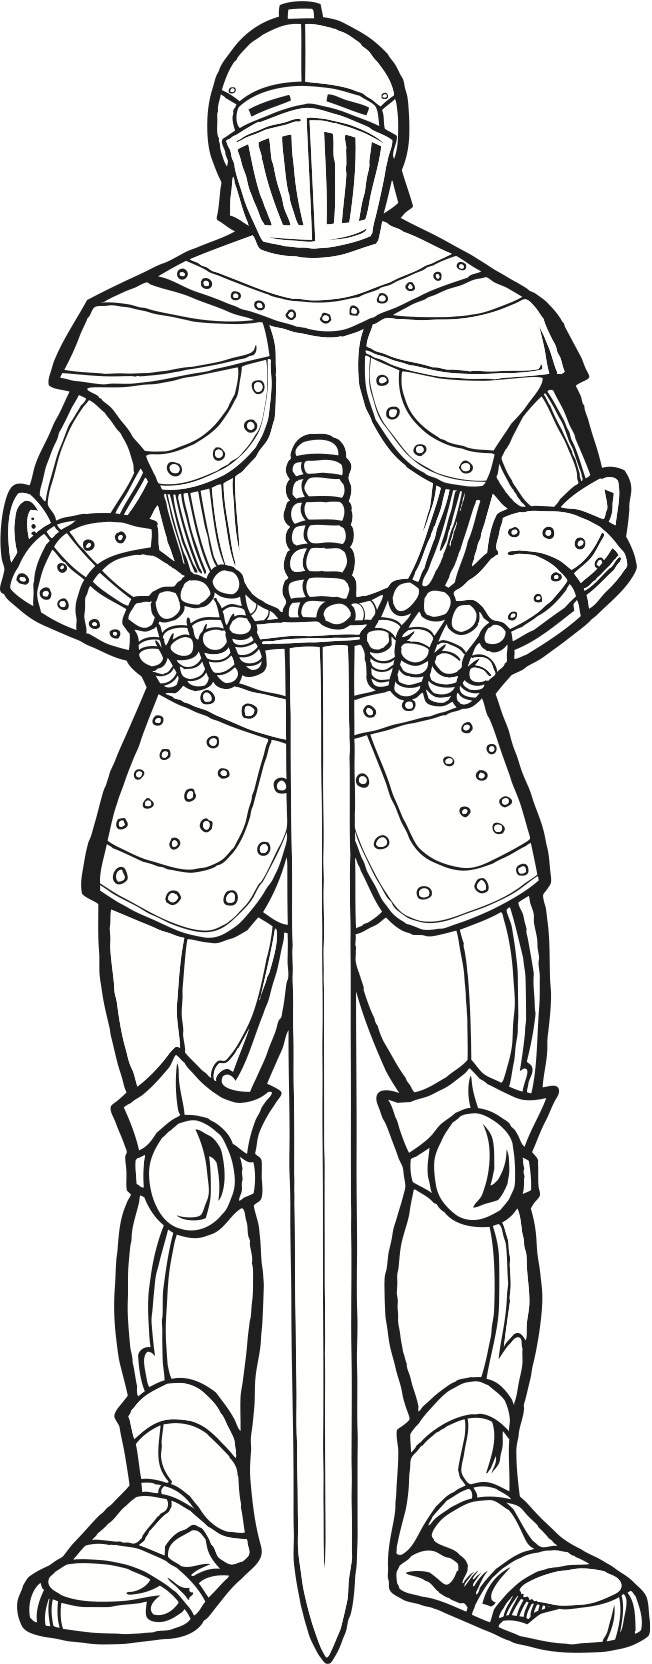 printable knight coloring pages - photo#2